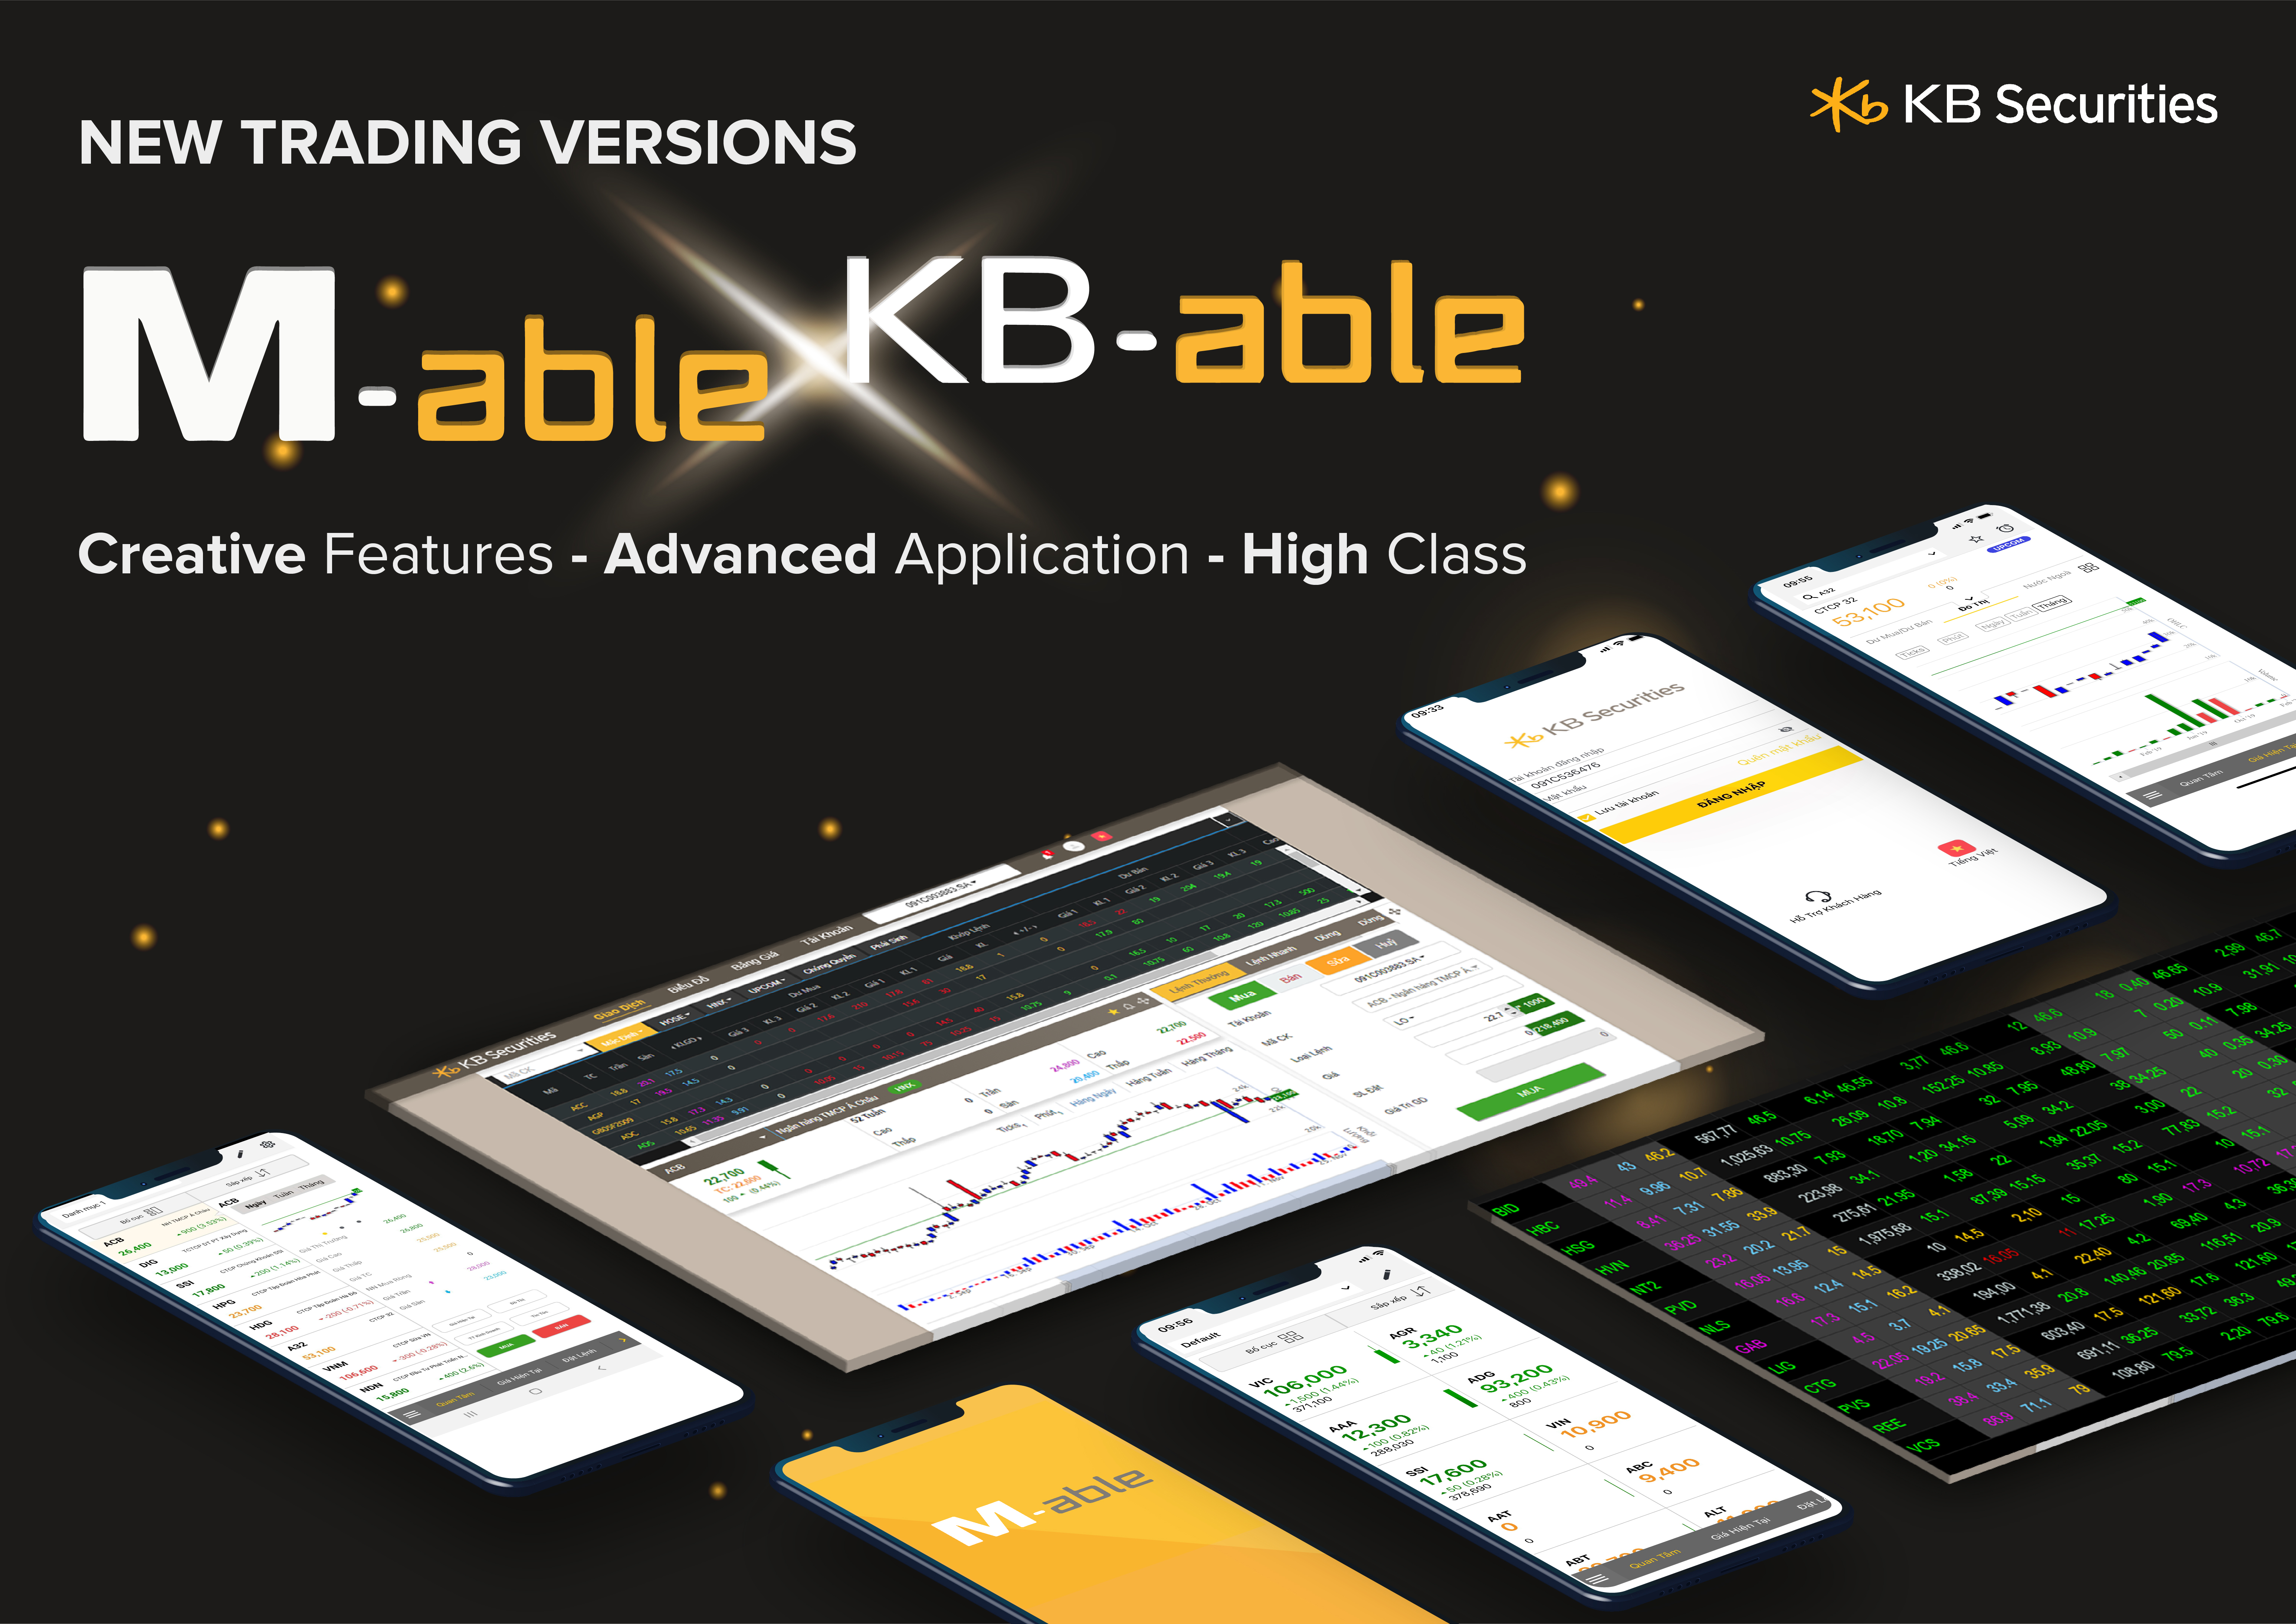 KBSV continued to launch mobile trading application M-able